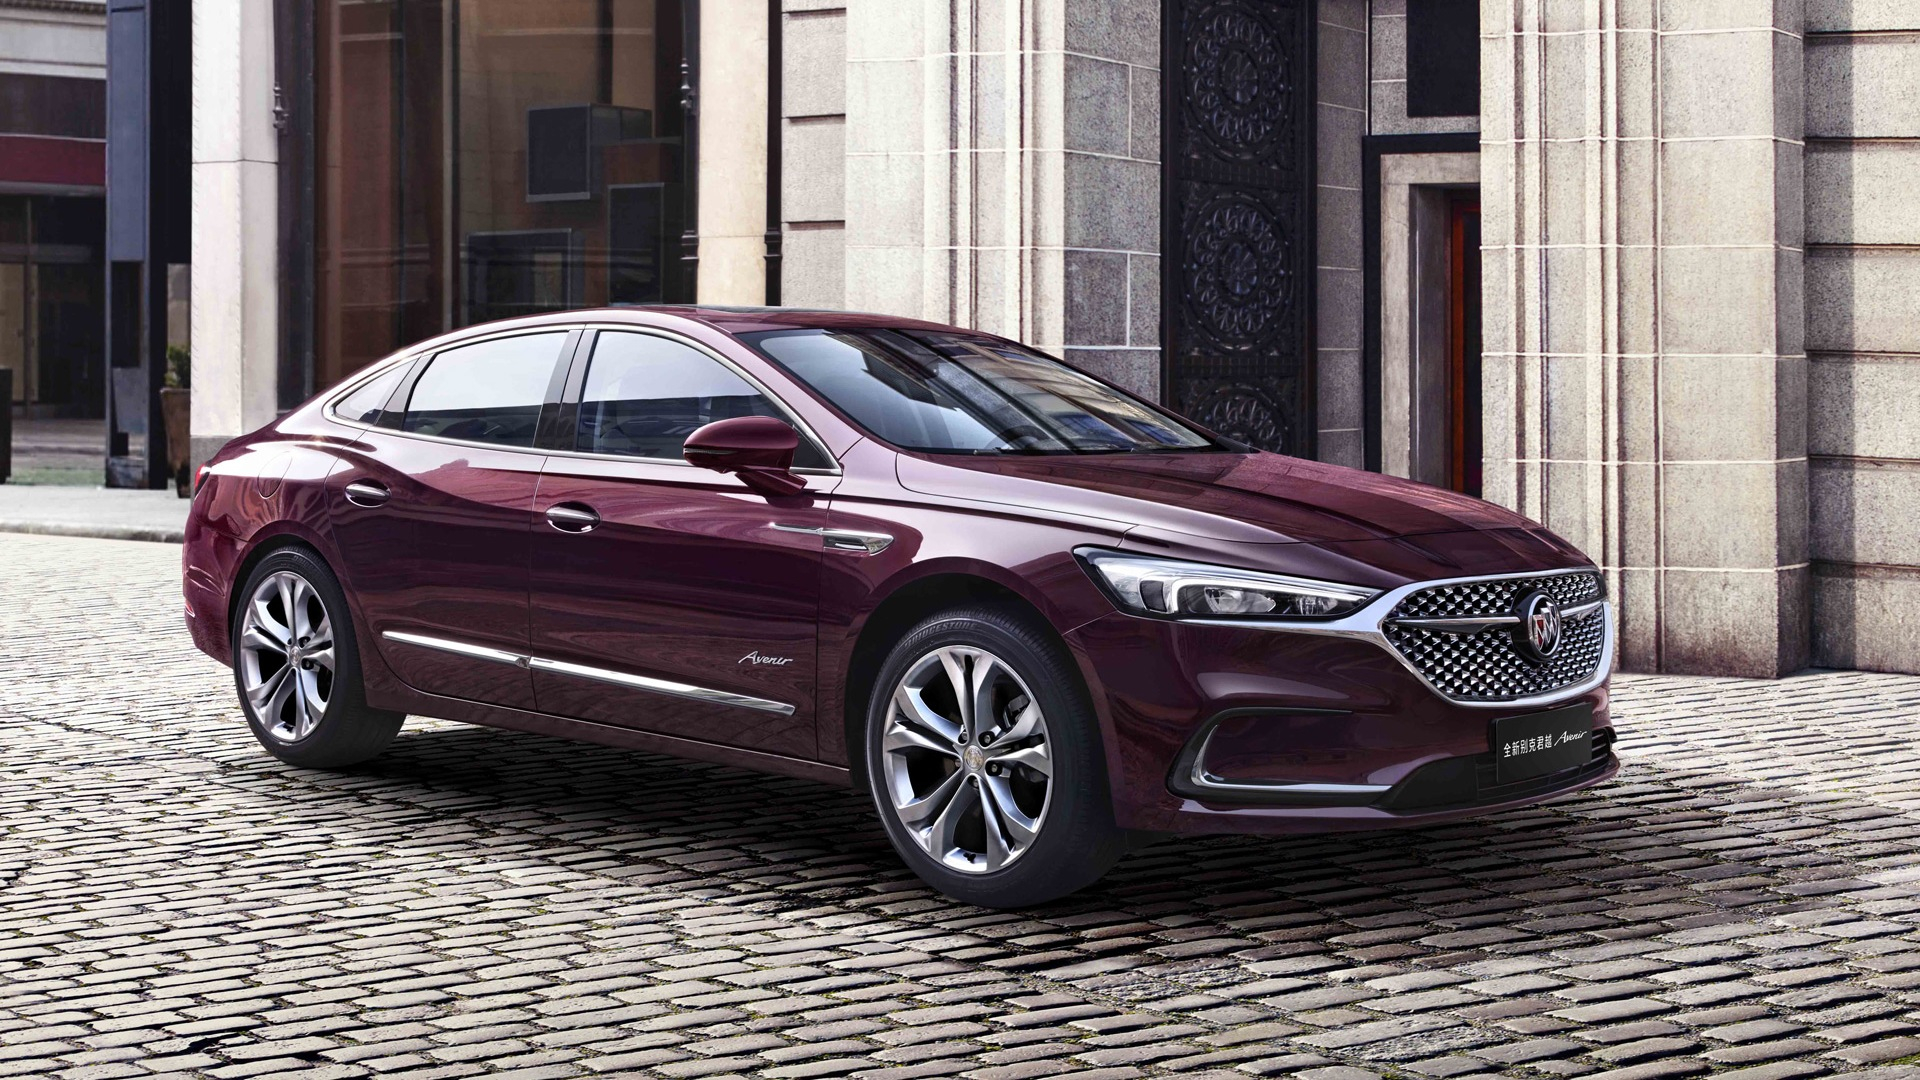 Car Spy Shots, News, Reviews, And Insights - Motor Authority New 2022 Buick Lacrosse Brochure, Release Date, Colors